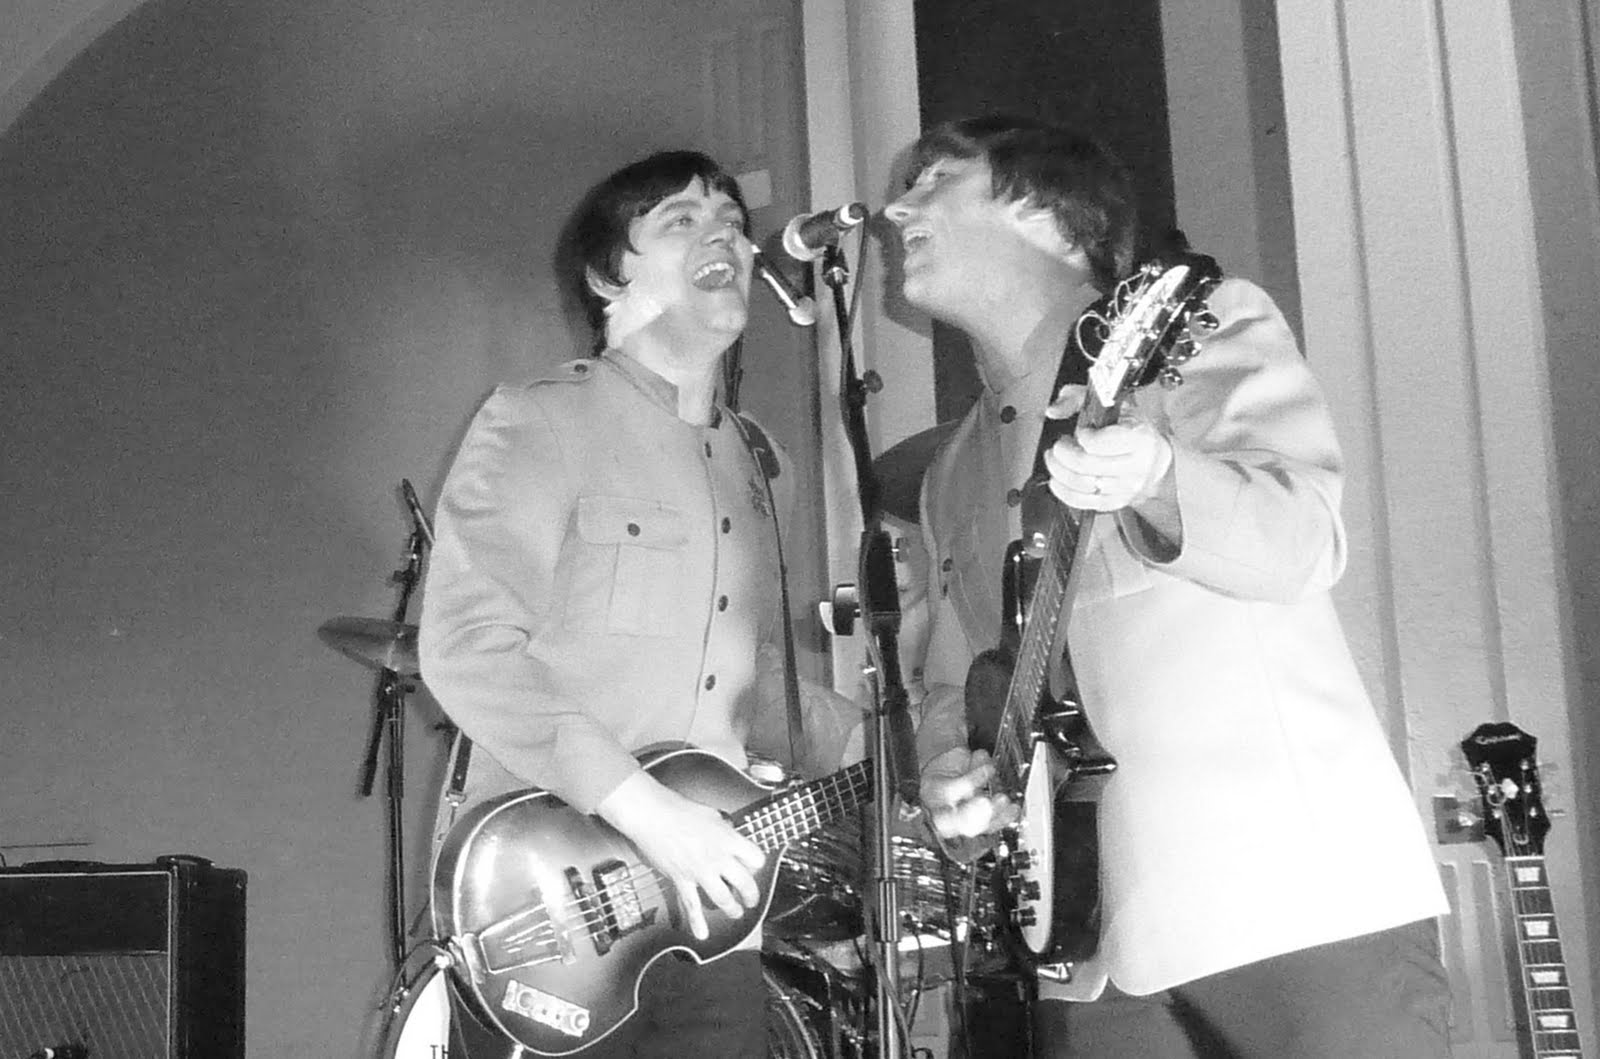 british beatles fan club the mersey beatles at the winter gardens